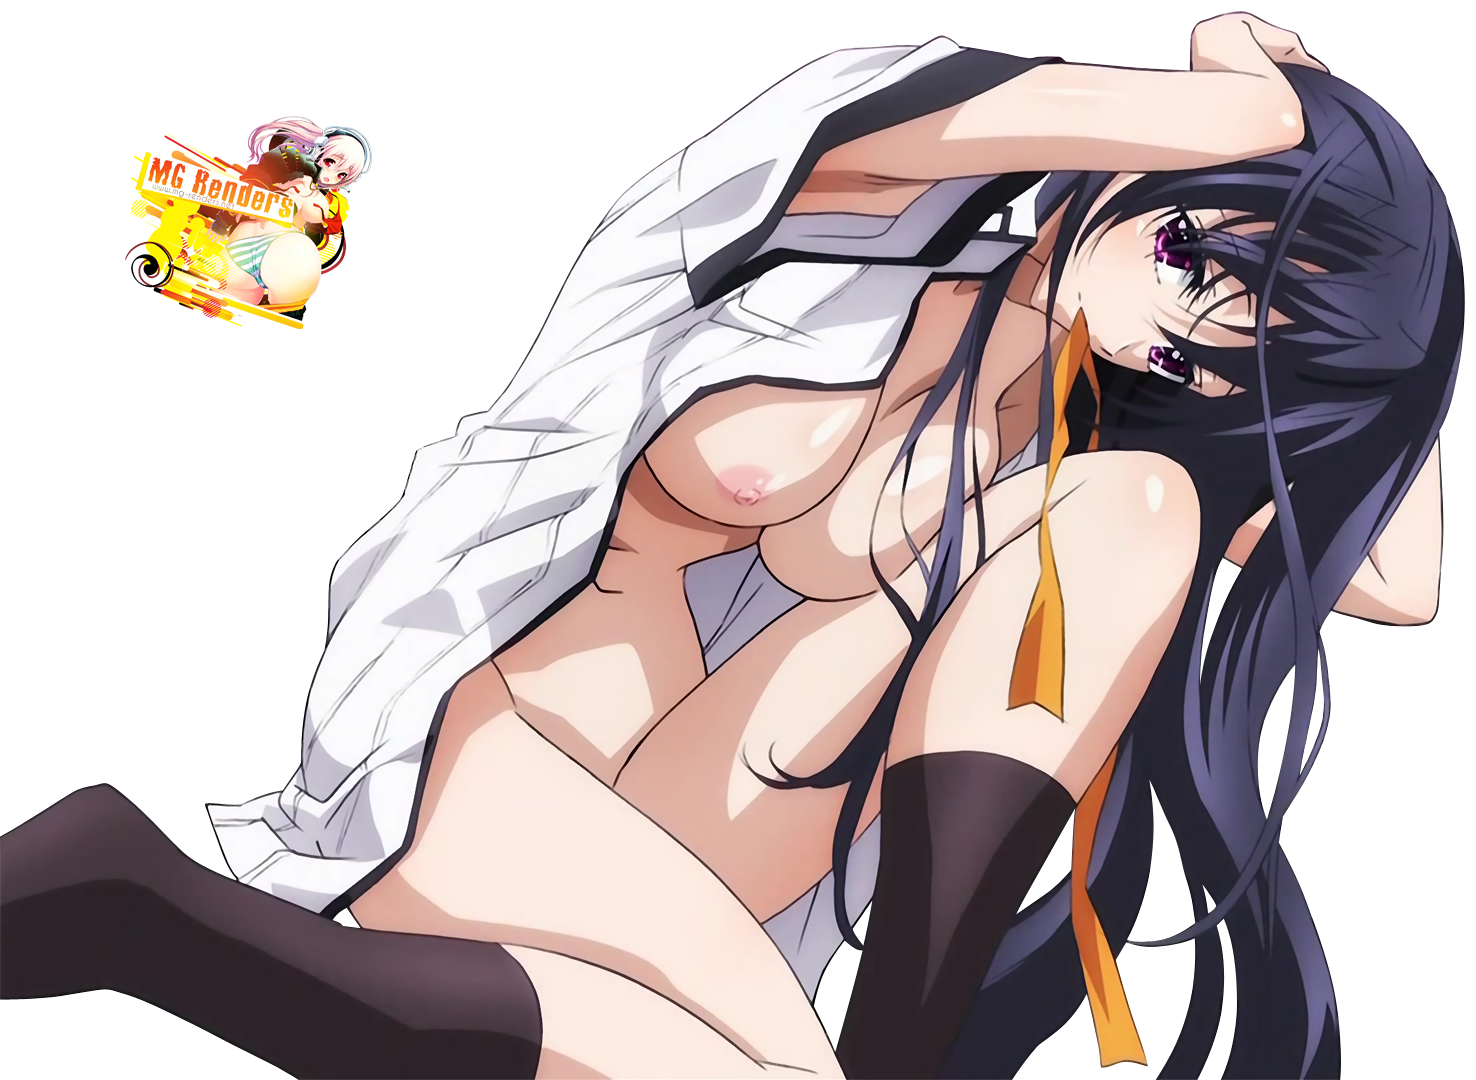 Shiranui akeno in bondage